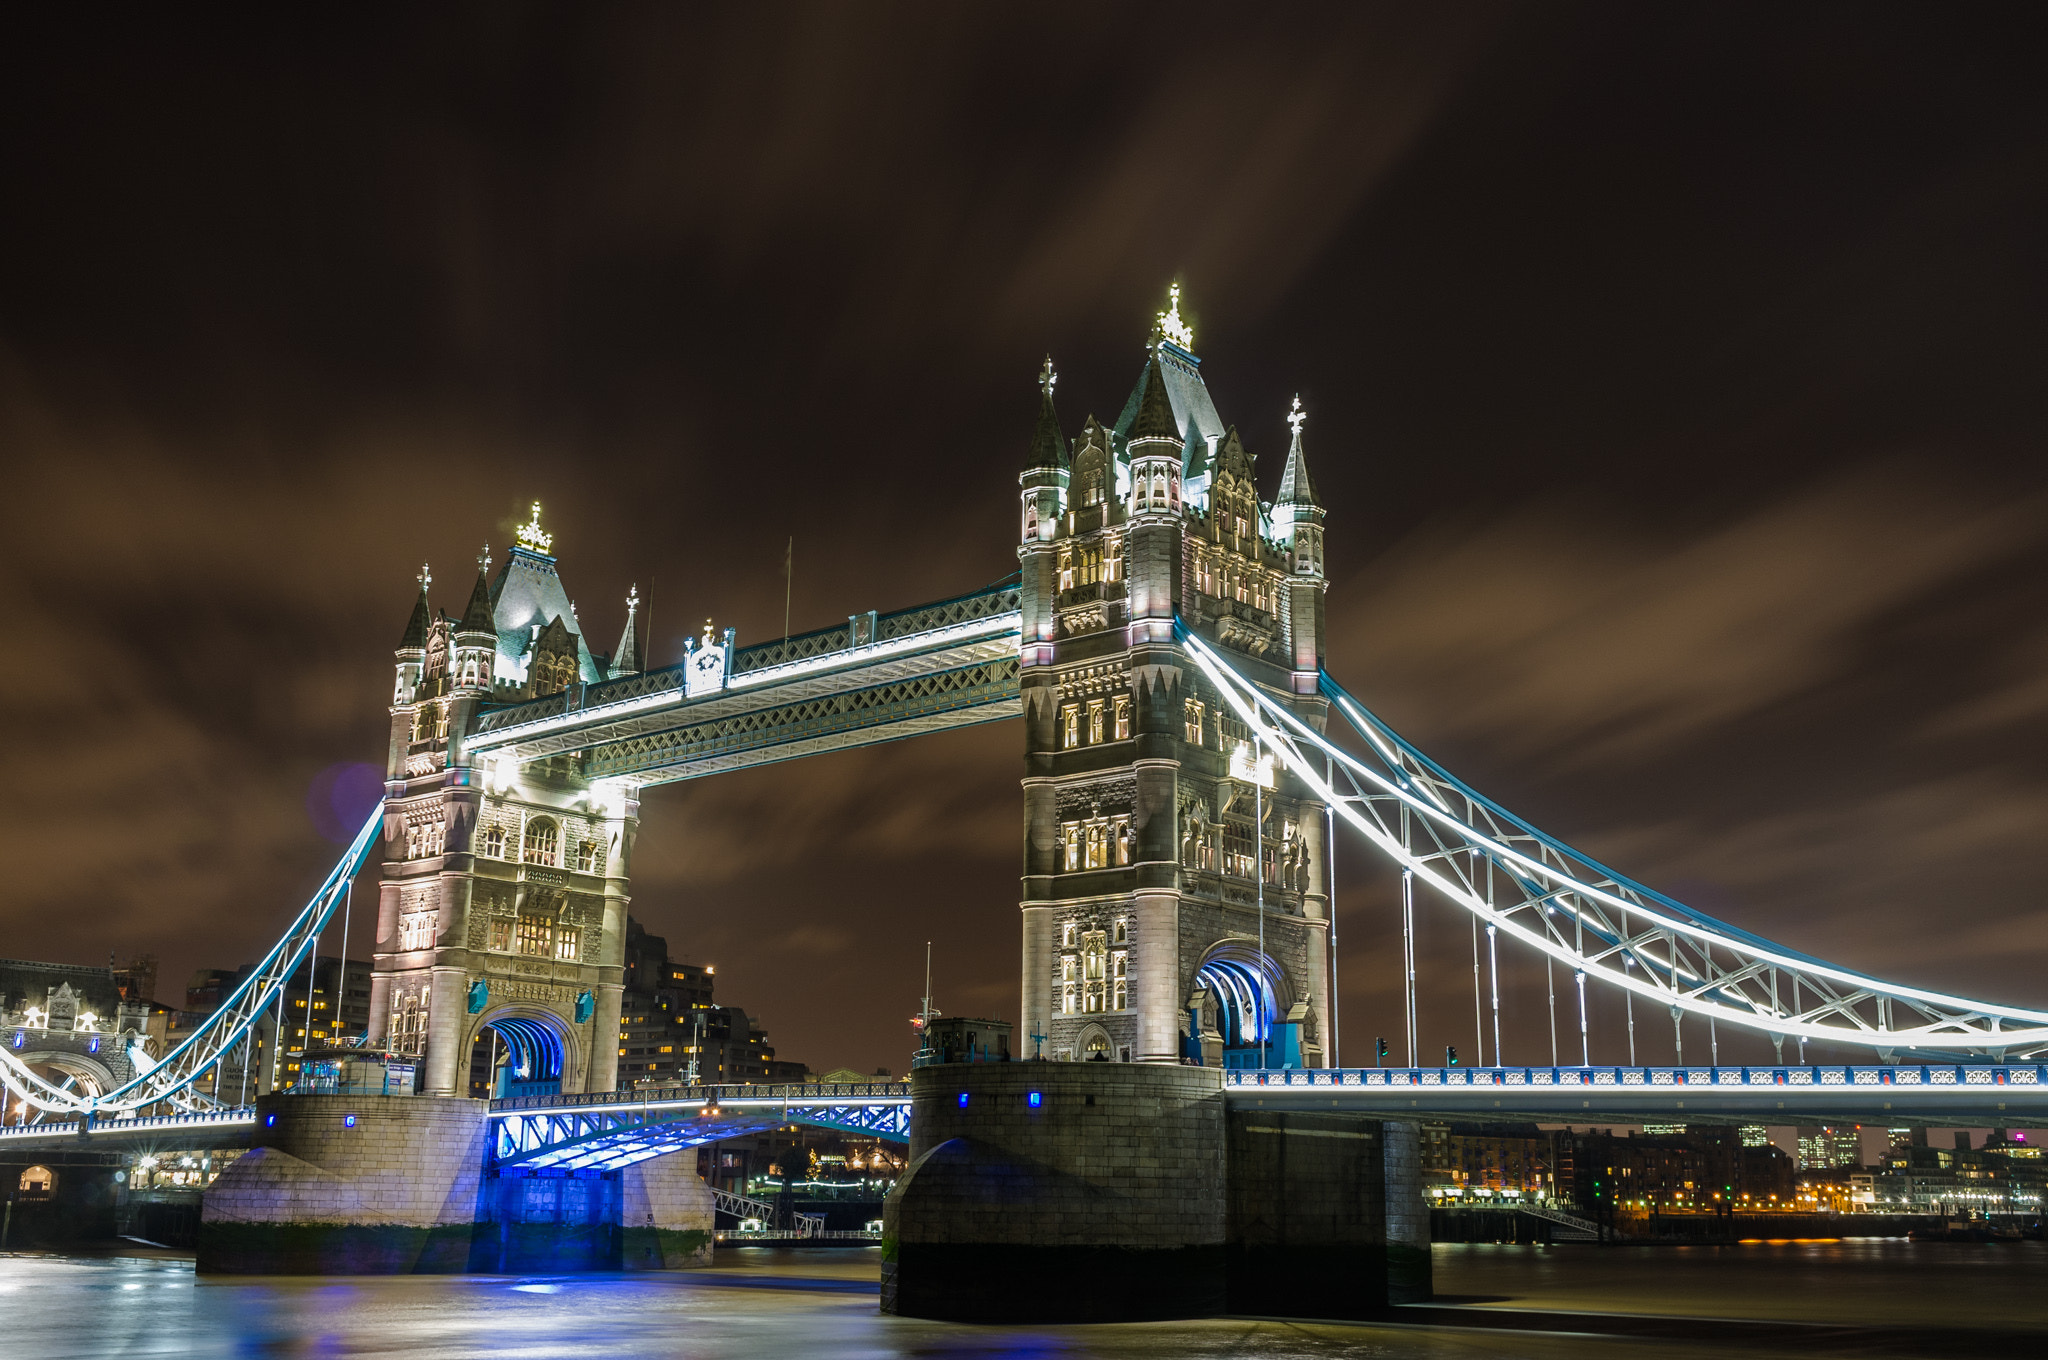 Photograph Tower Bridge, London by Marek Ziolkowski on 500px